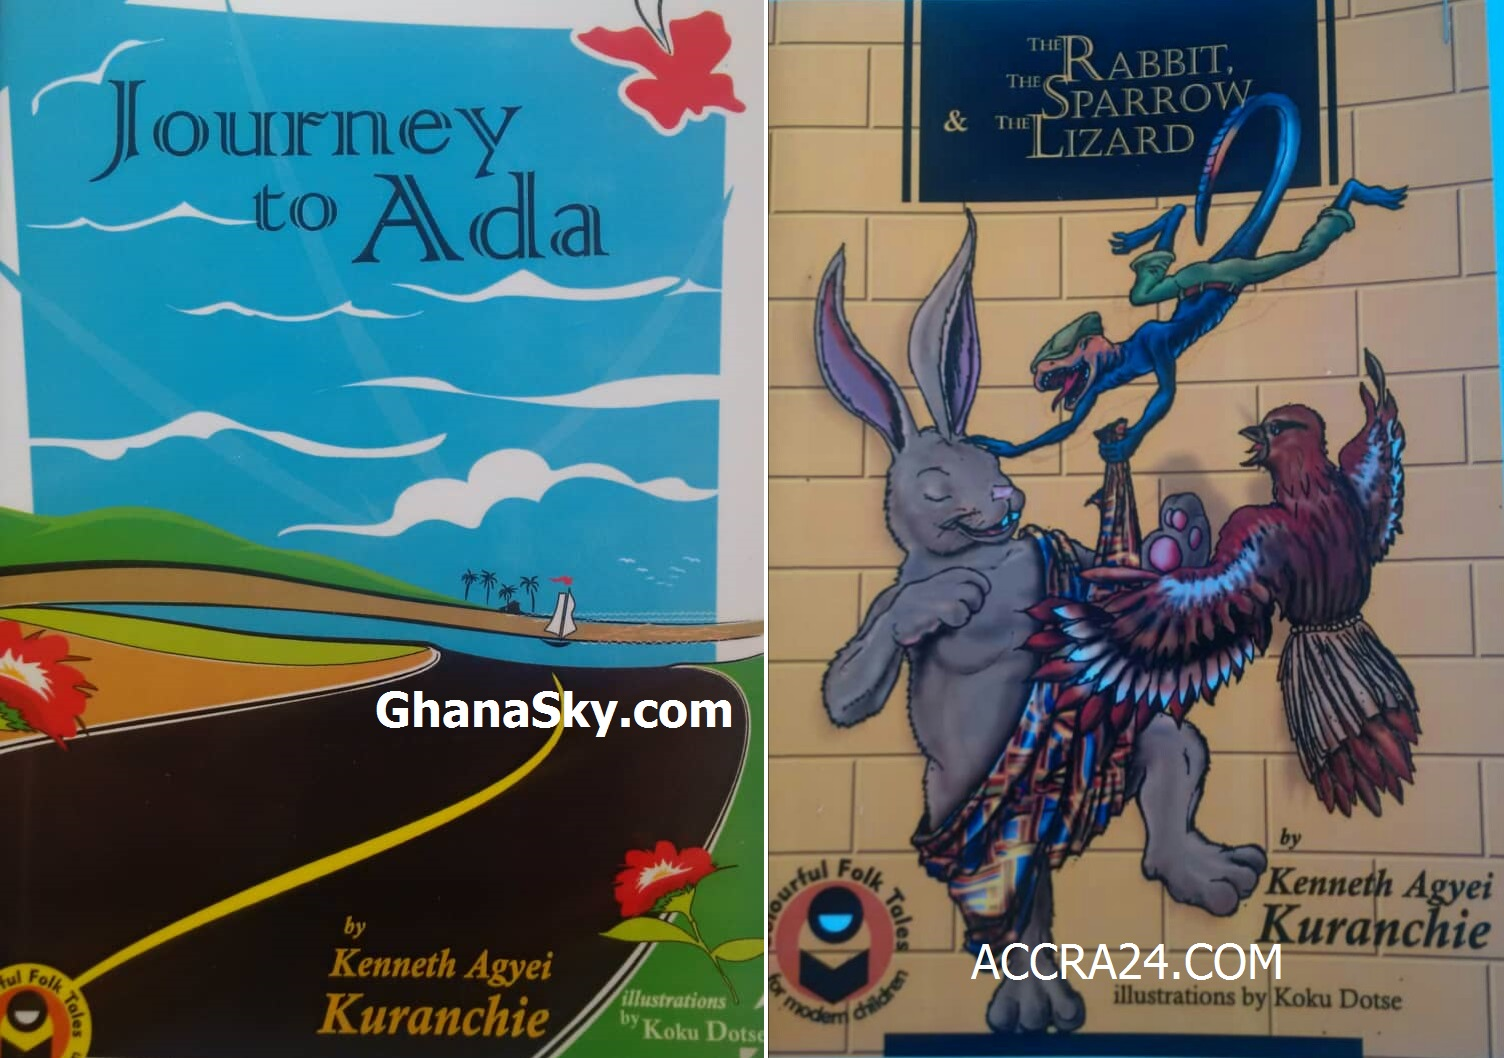 Journey to Ada And The Rabbit, The Sparrow and The Lizard.